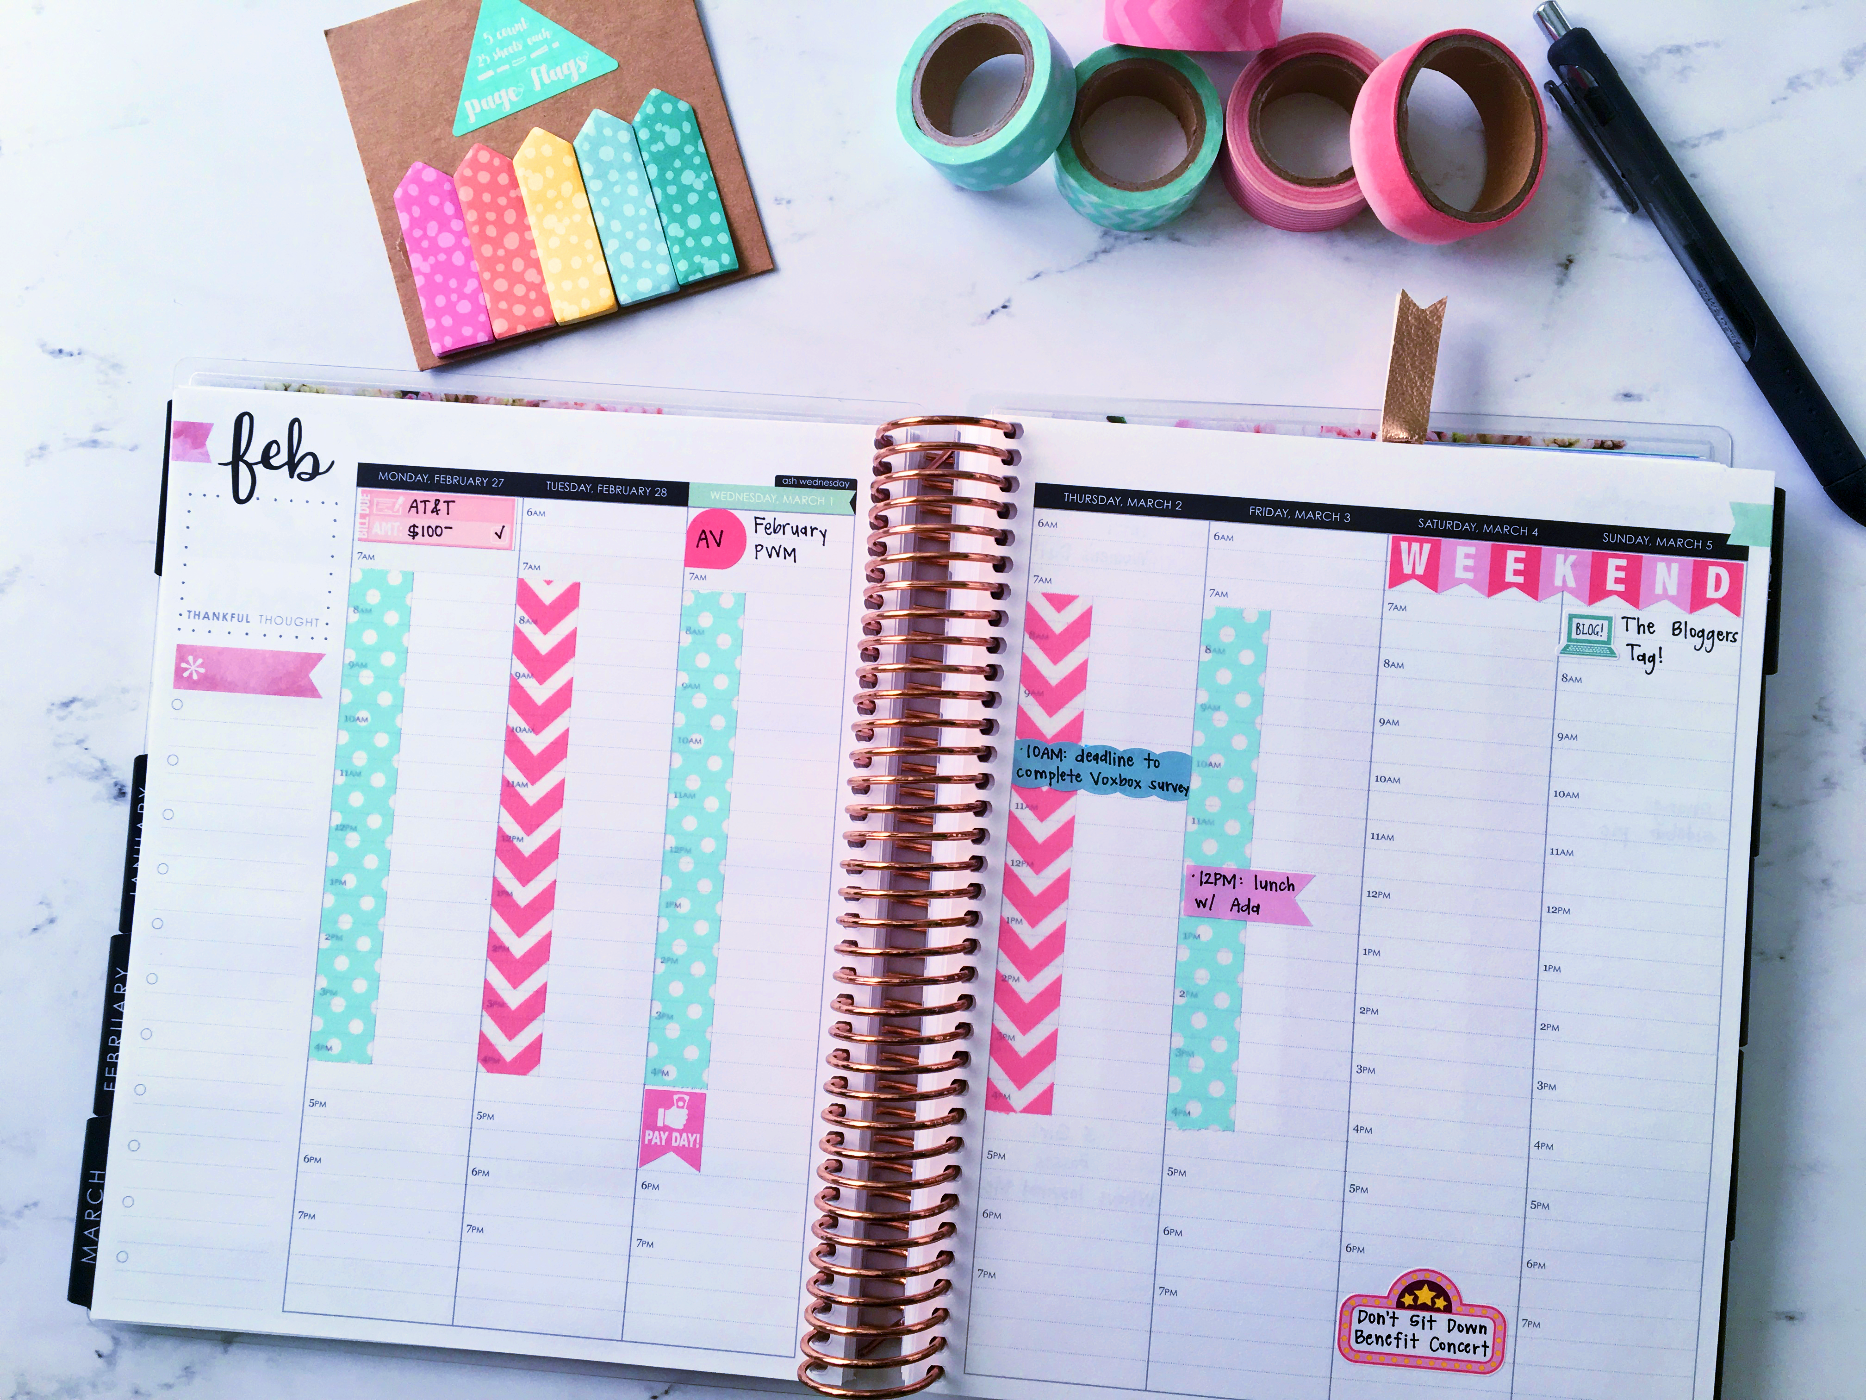 March 2017 Plan With Me // Week 1